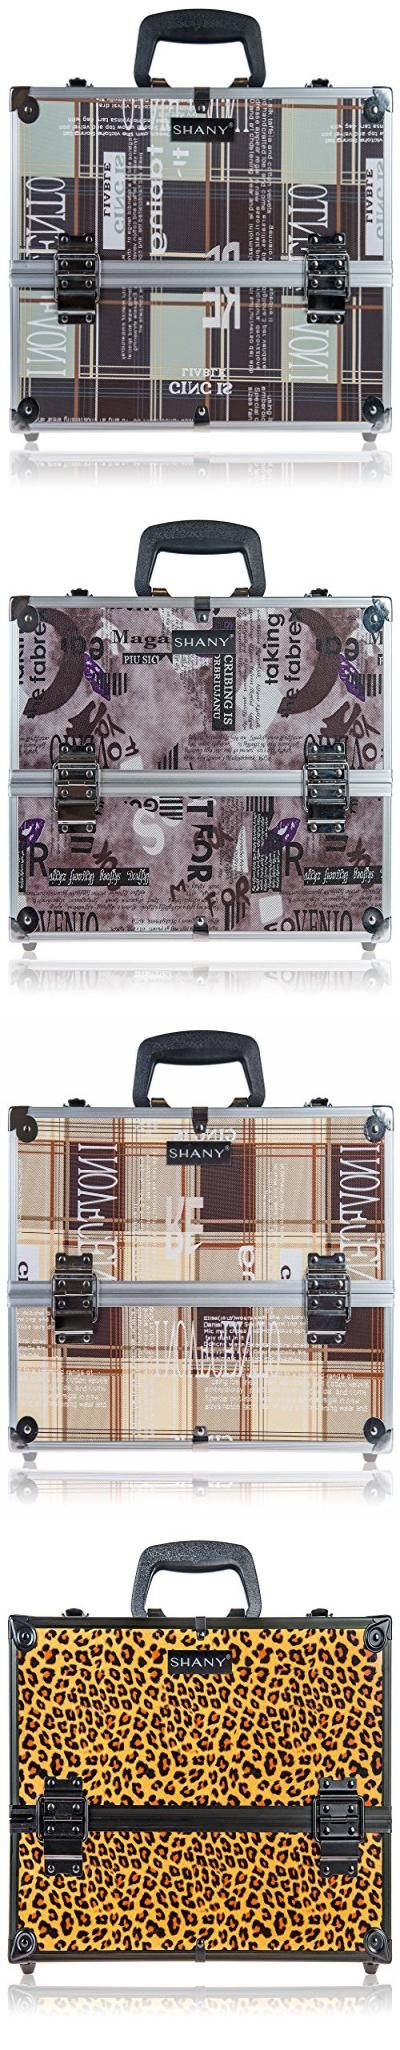 SHANY Cosmetics Premium Collection Aluminum Makeup Train Case - Reviews #SHANY #Cosmetics #Premium #Collection #Aluminum #Makeup #Train #Case #Reviews #Reviews